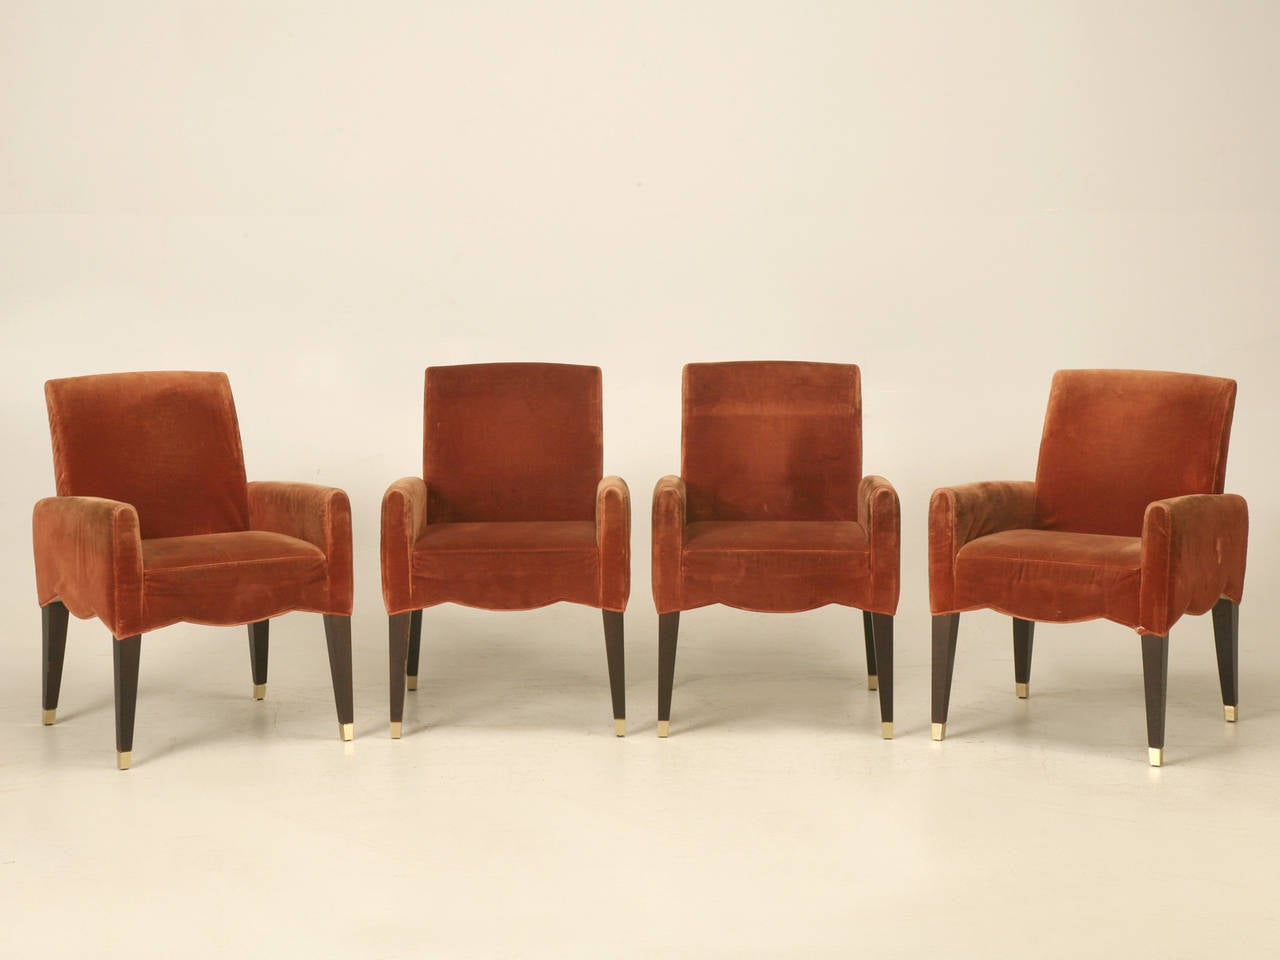 Unusual suite of (4) armchairs known as the model; Café Marly and probably produced in the mid-1980's. Born in 1952, Olivier Gagnère is a self-taught designer of ceramics, furniture, glass, interior design, metalwork, and product design. His